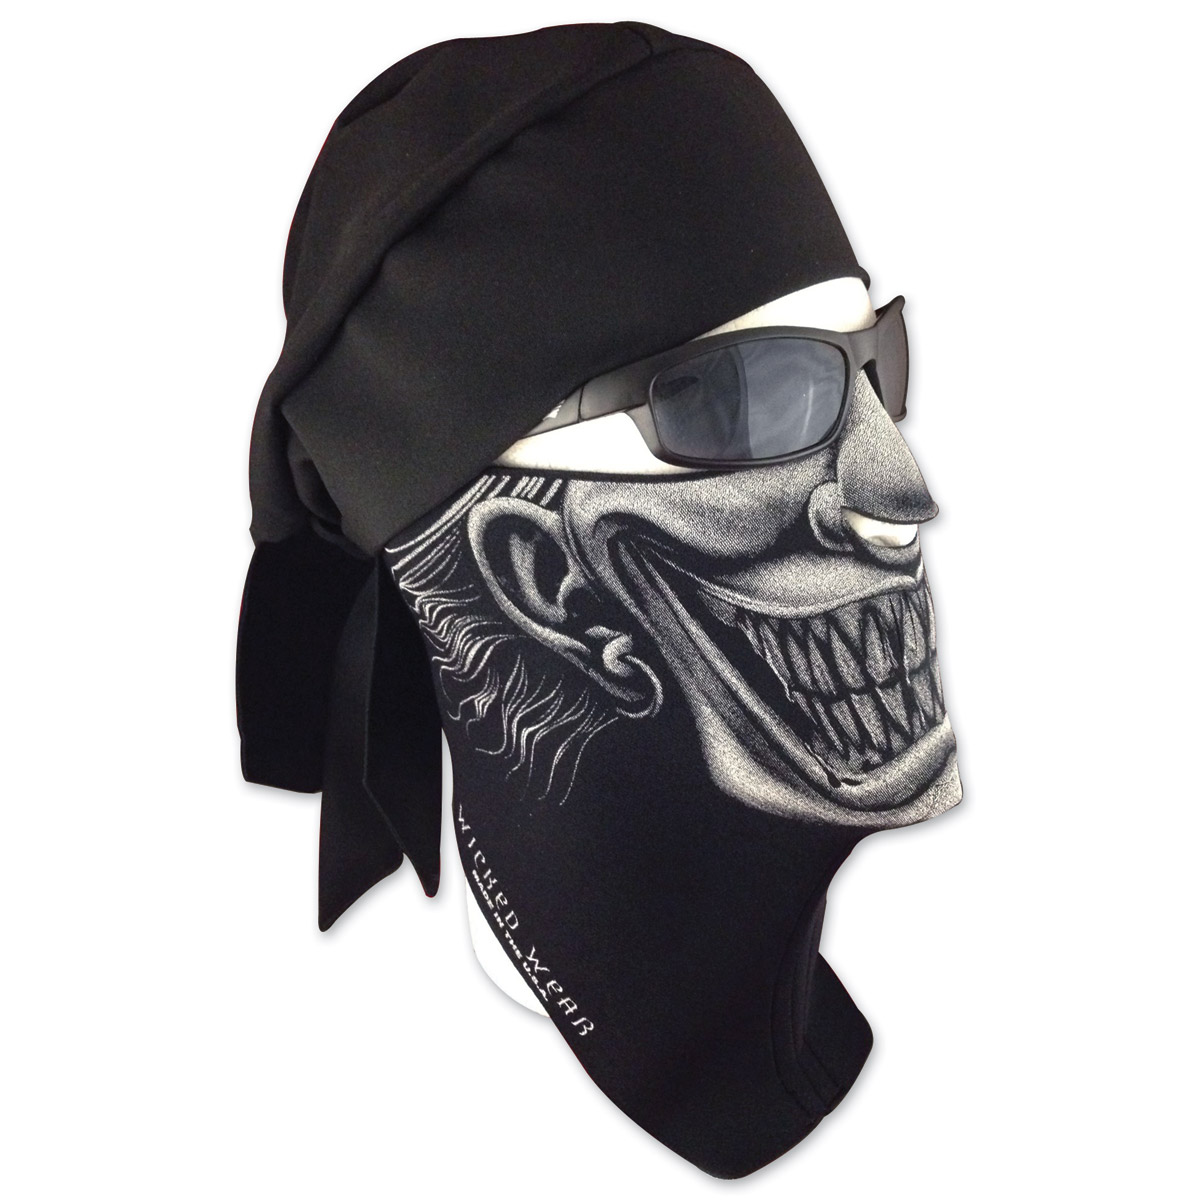 Wicked Wear Clown X-tremely Cool Weather Half Mask